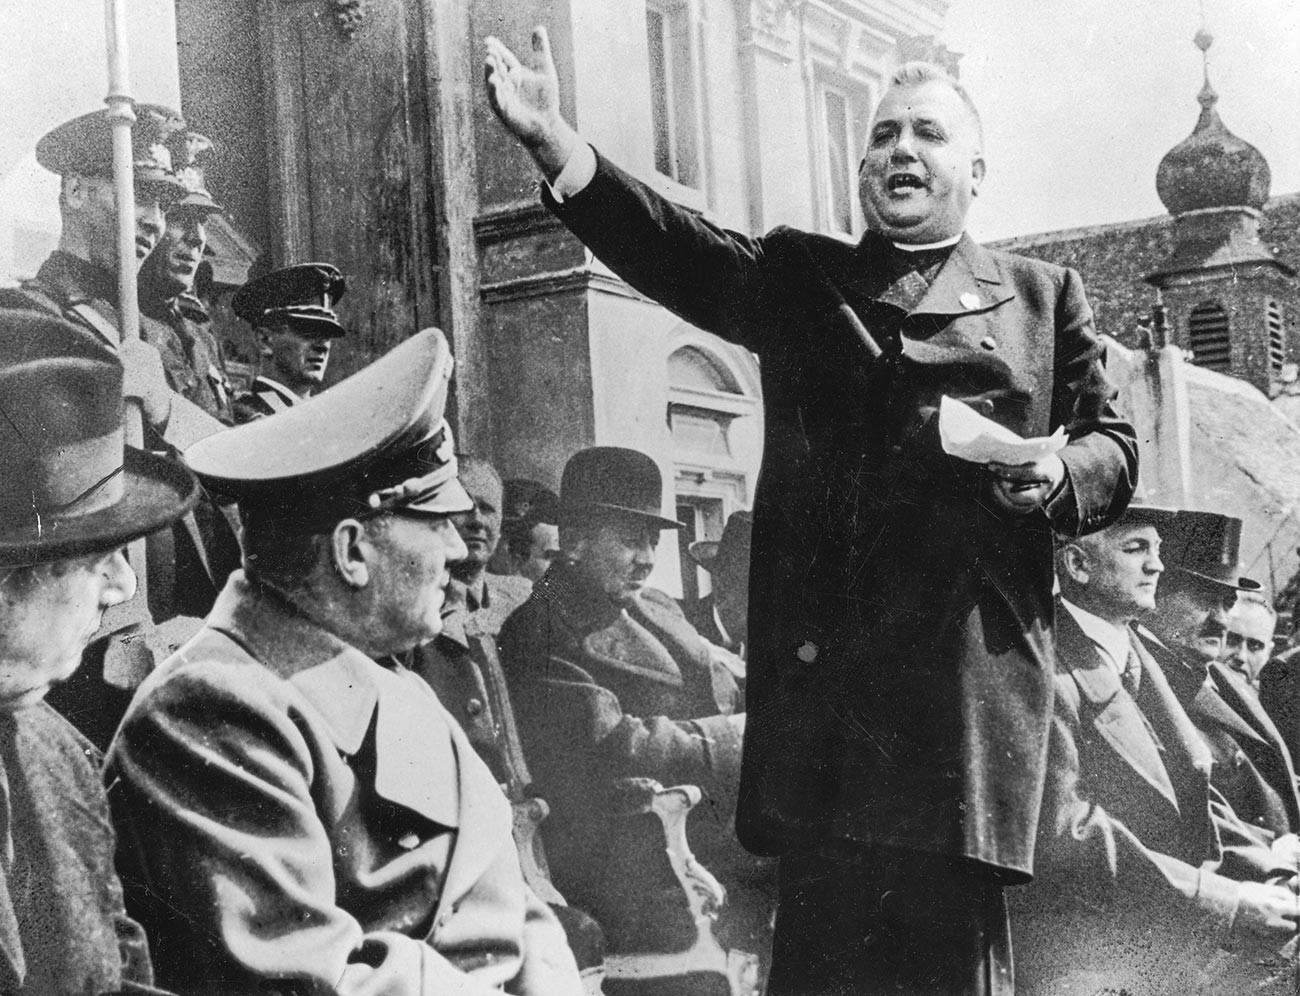 Slovak priest and political leader Jozef Tiso welcomes the Nazis to Slovakia, 1939.